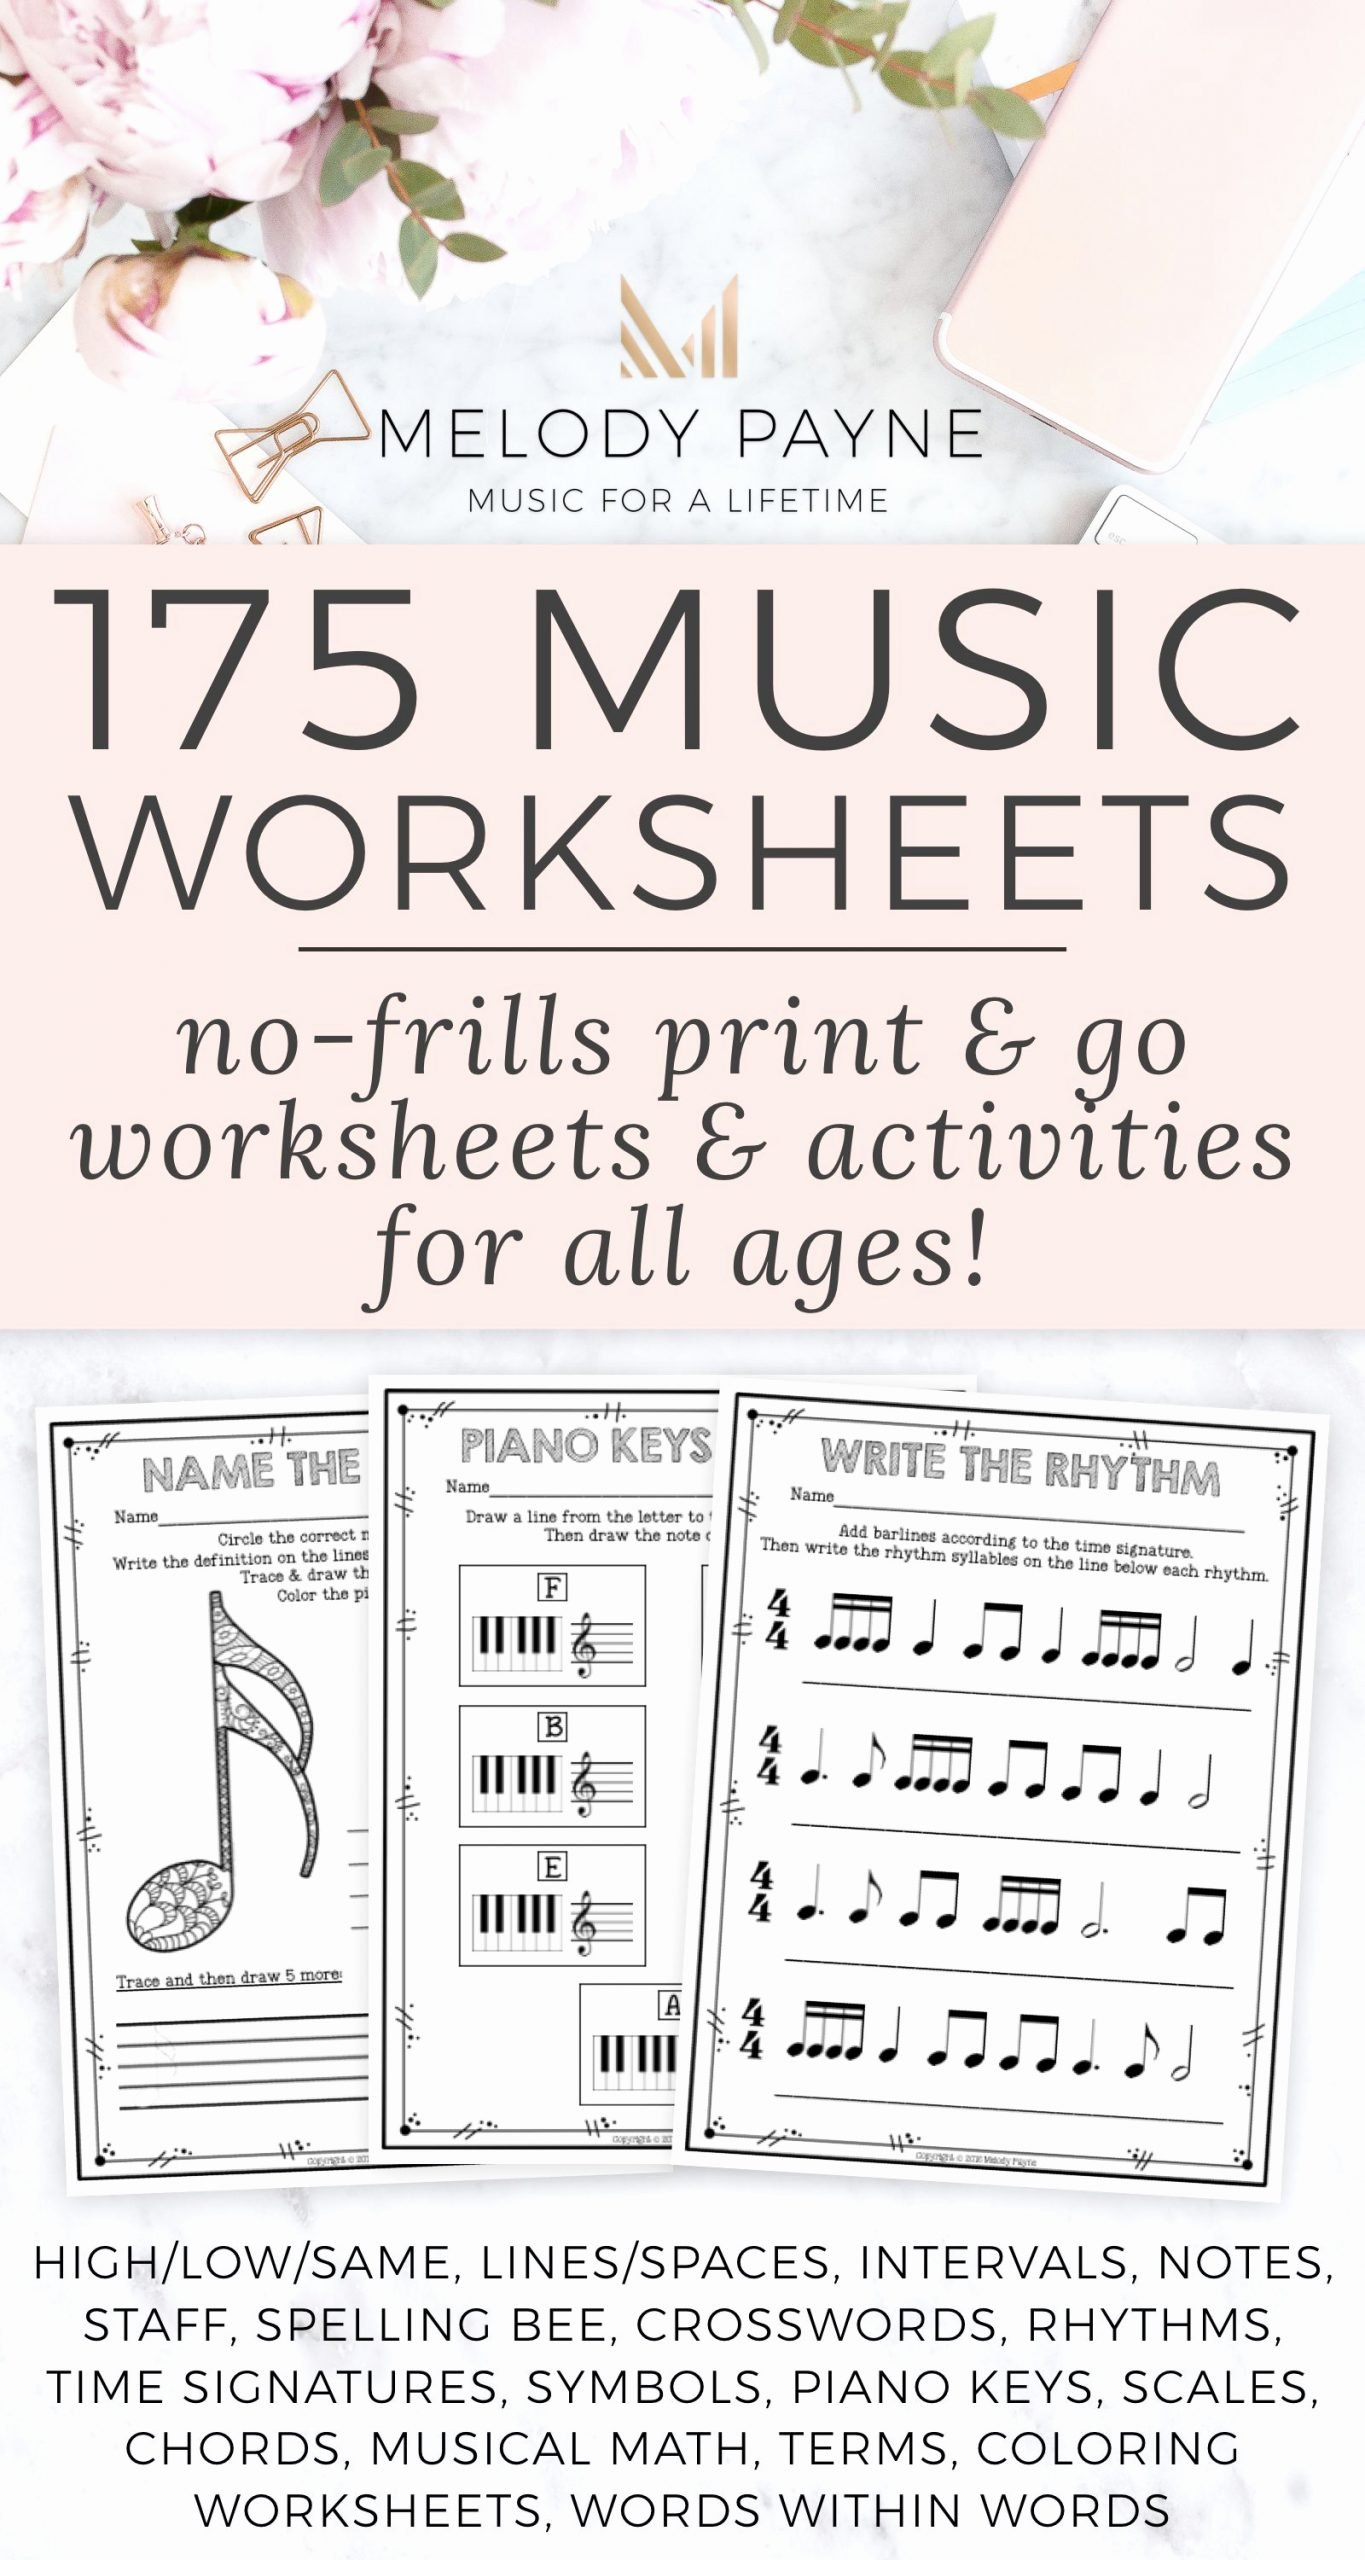 Music Worksheets for Middle School Free 200 Music Distance Learning Music Worksheets Pdf & Digital